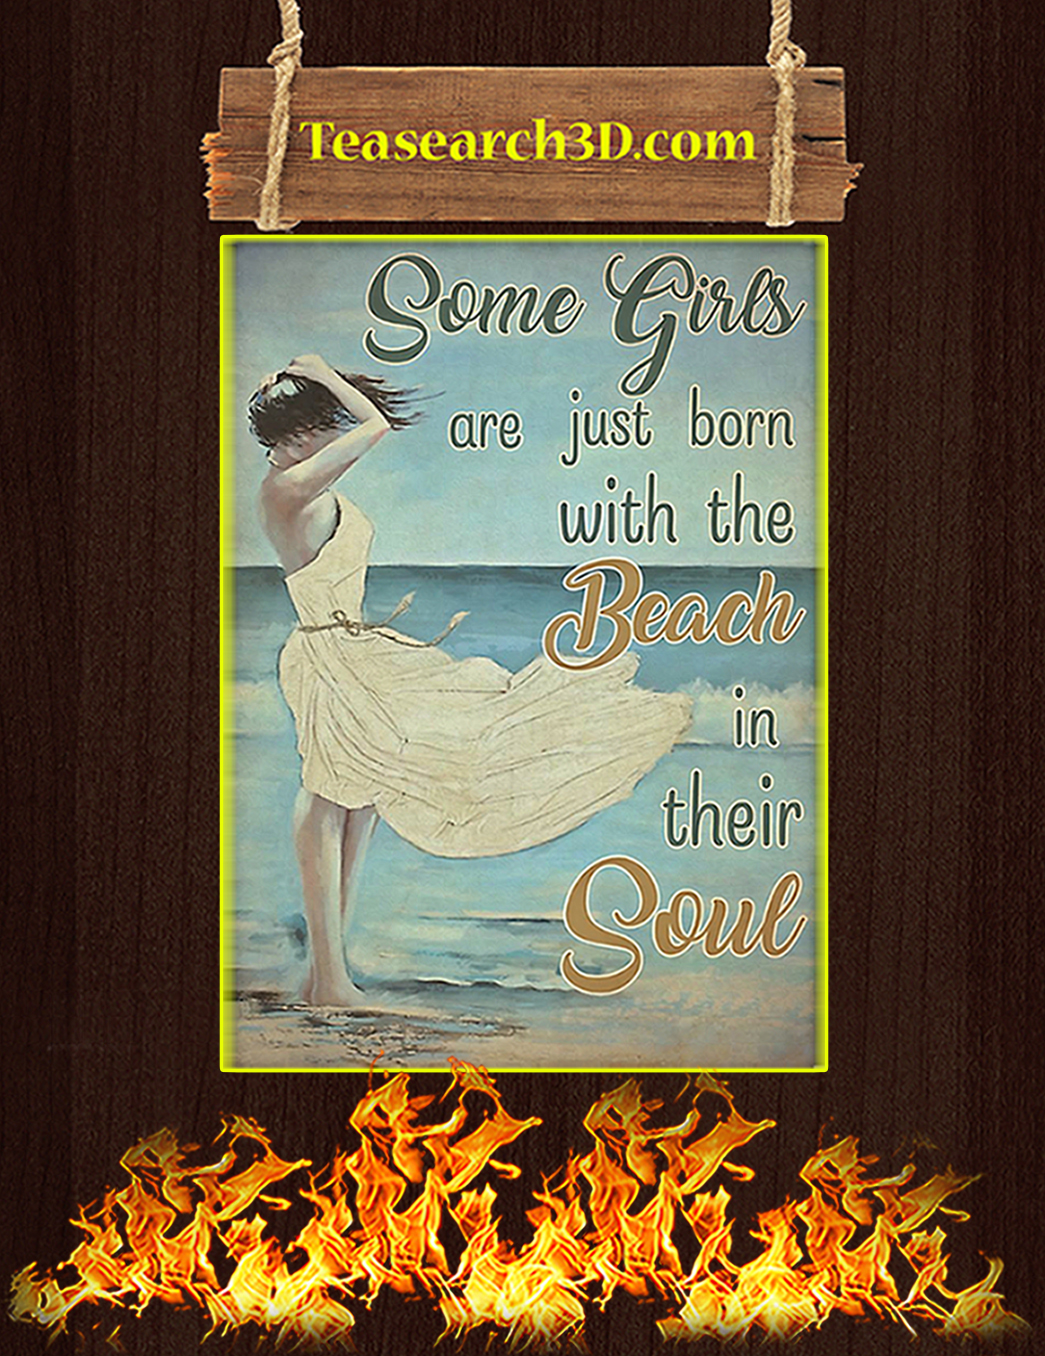 Some girls are just born with the beach in their soul poster A1